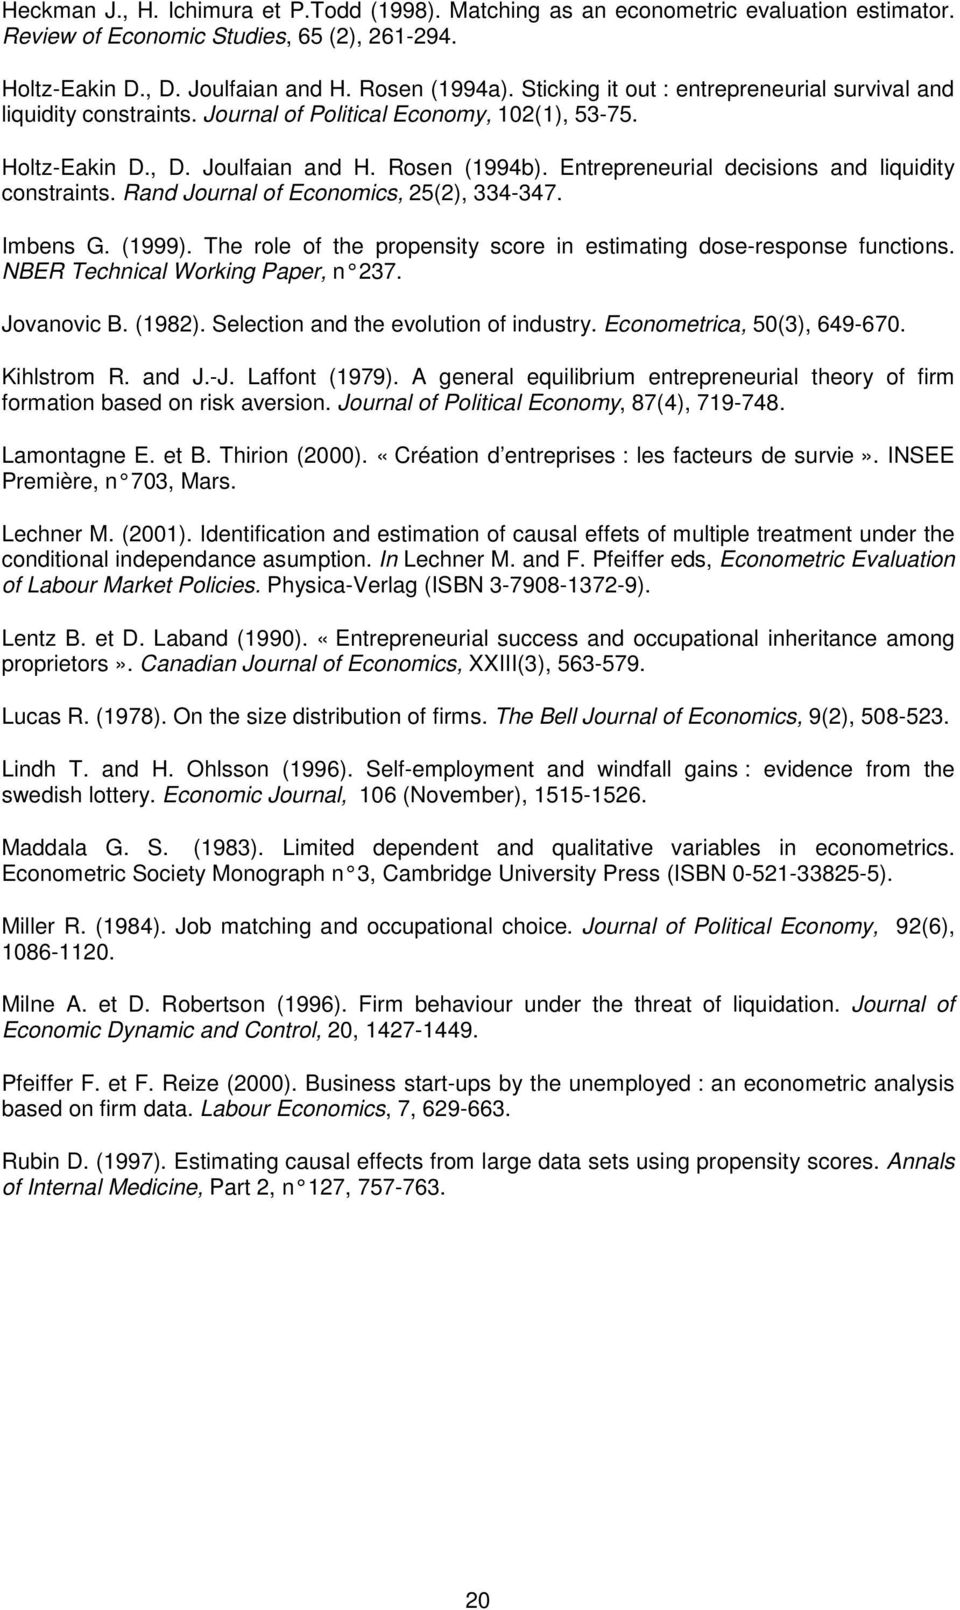 Journal of Economics, 25(2), 334-347 Imbens G (1999) The role of the propensity score in estimating dose-response functions NBER Technical Working Paper, n 237 Jovanovic B (1982) Selection and the